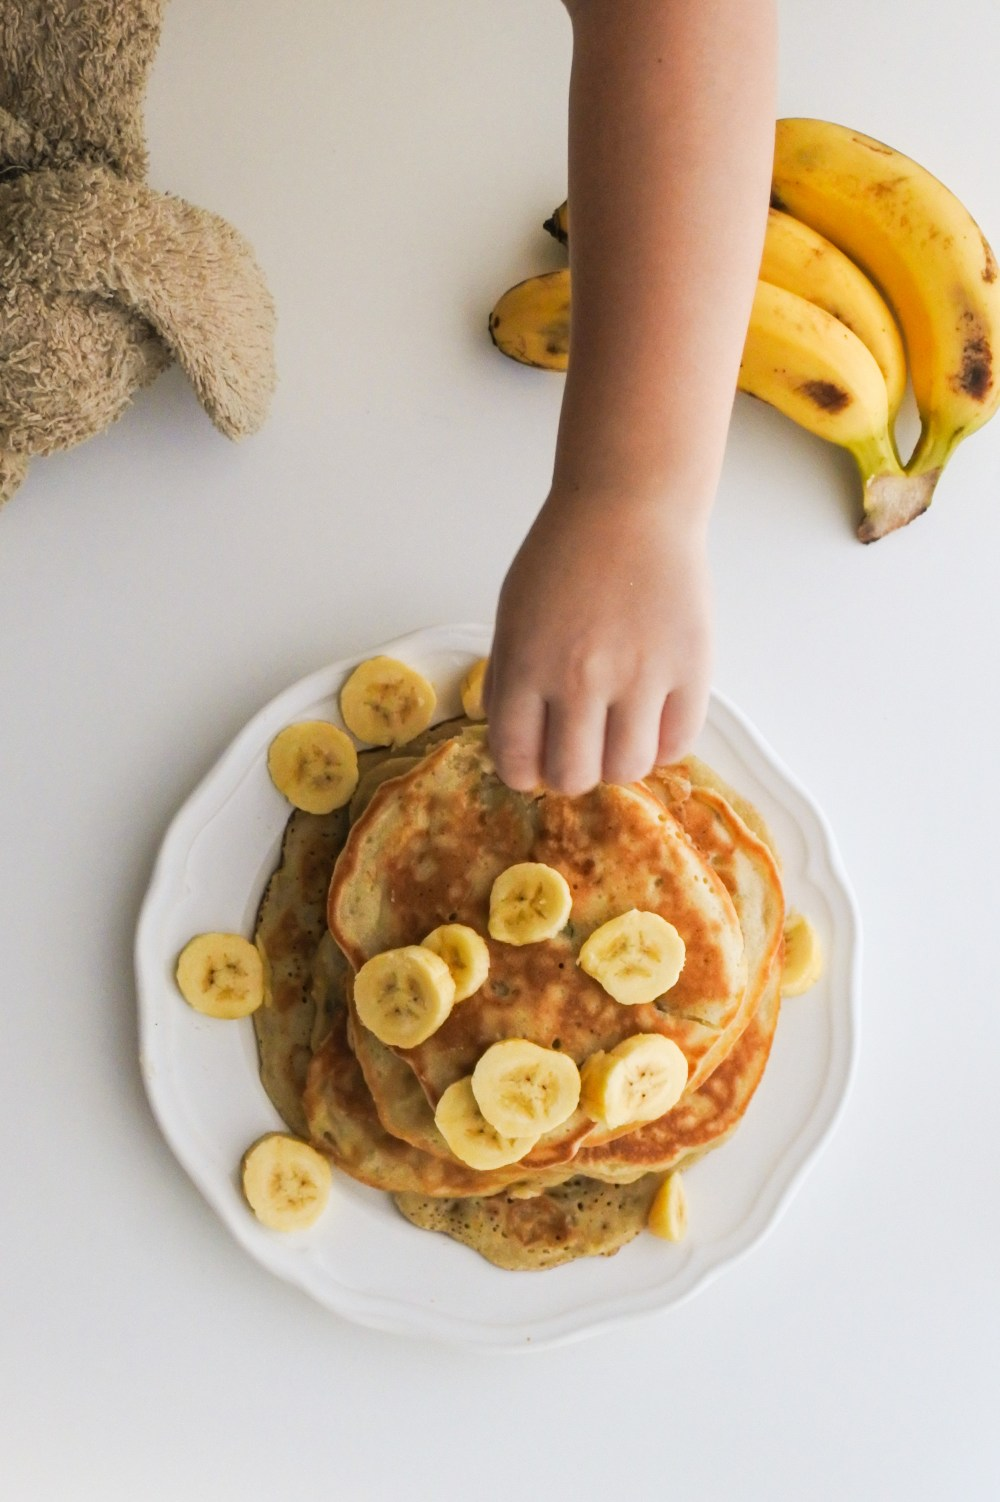 A little hand grabbing a banana slice on top of a stack of pancakes alongside a child's stuffed animal and small bunch of bananas